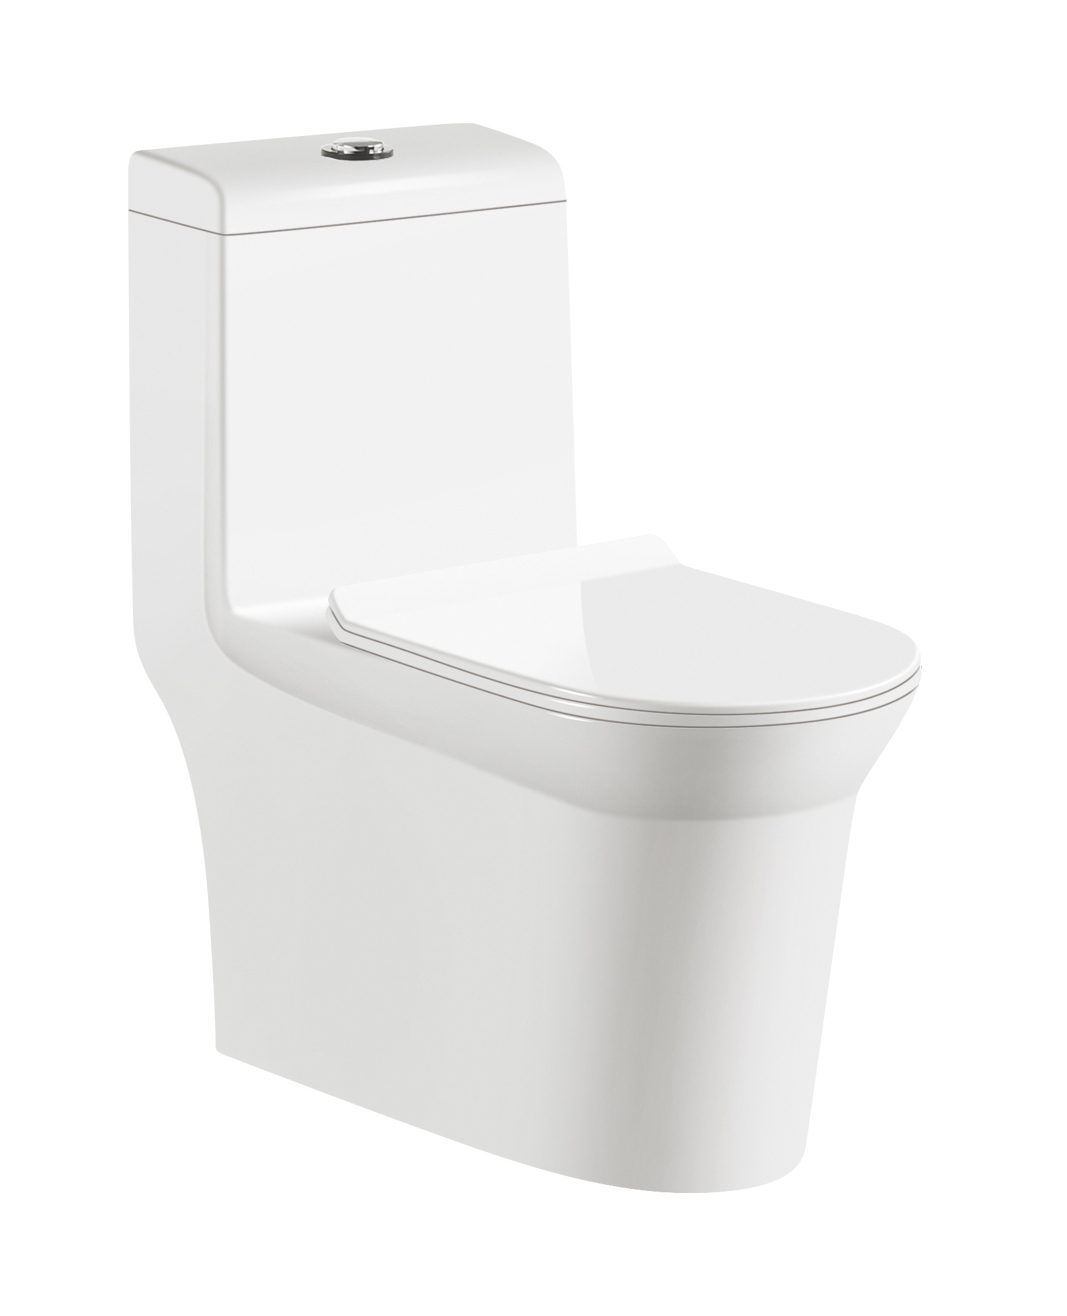 Big Pipeline 8.0 Siphonic Close-coupled Toilet Sanitary Ware WC Bathroom Design